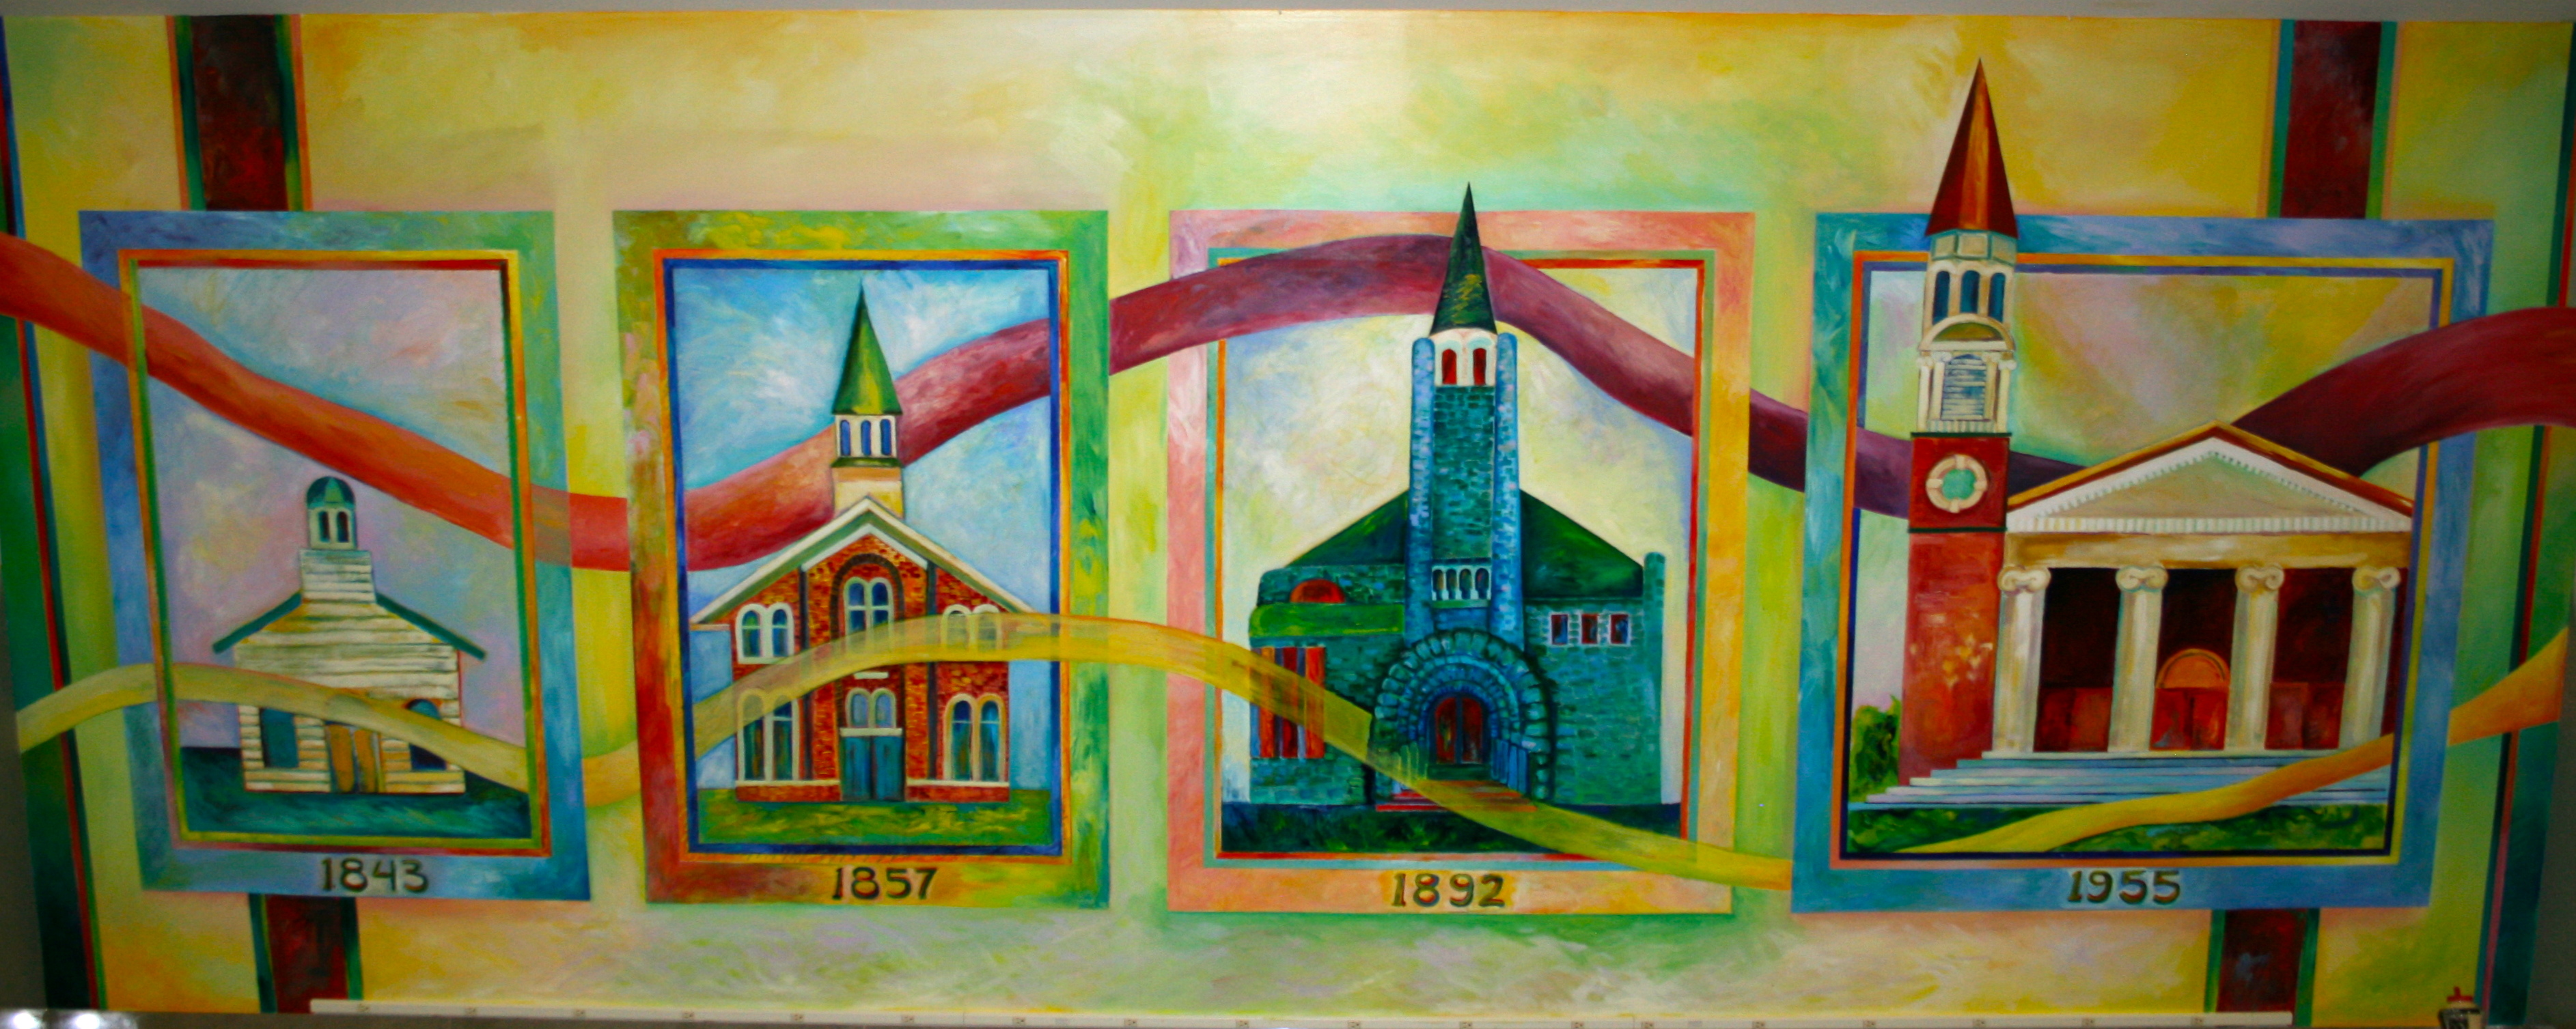 4 churches mural